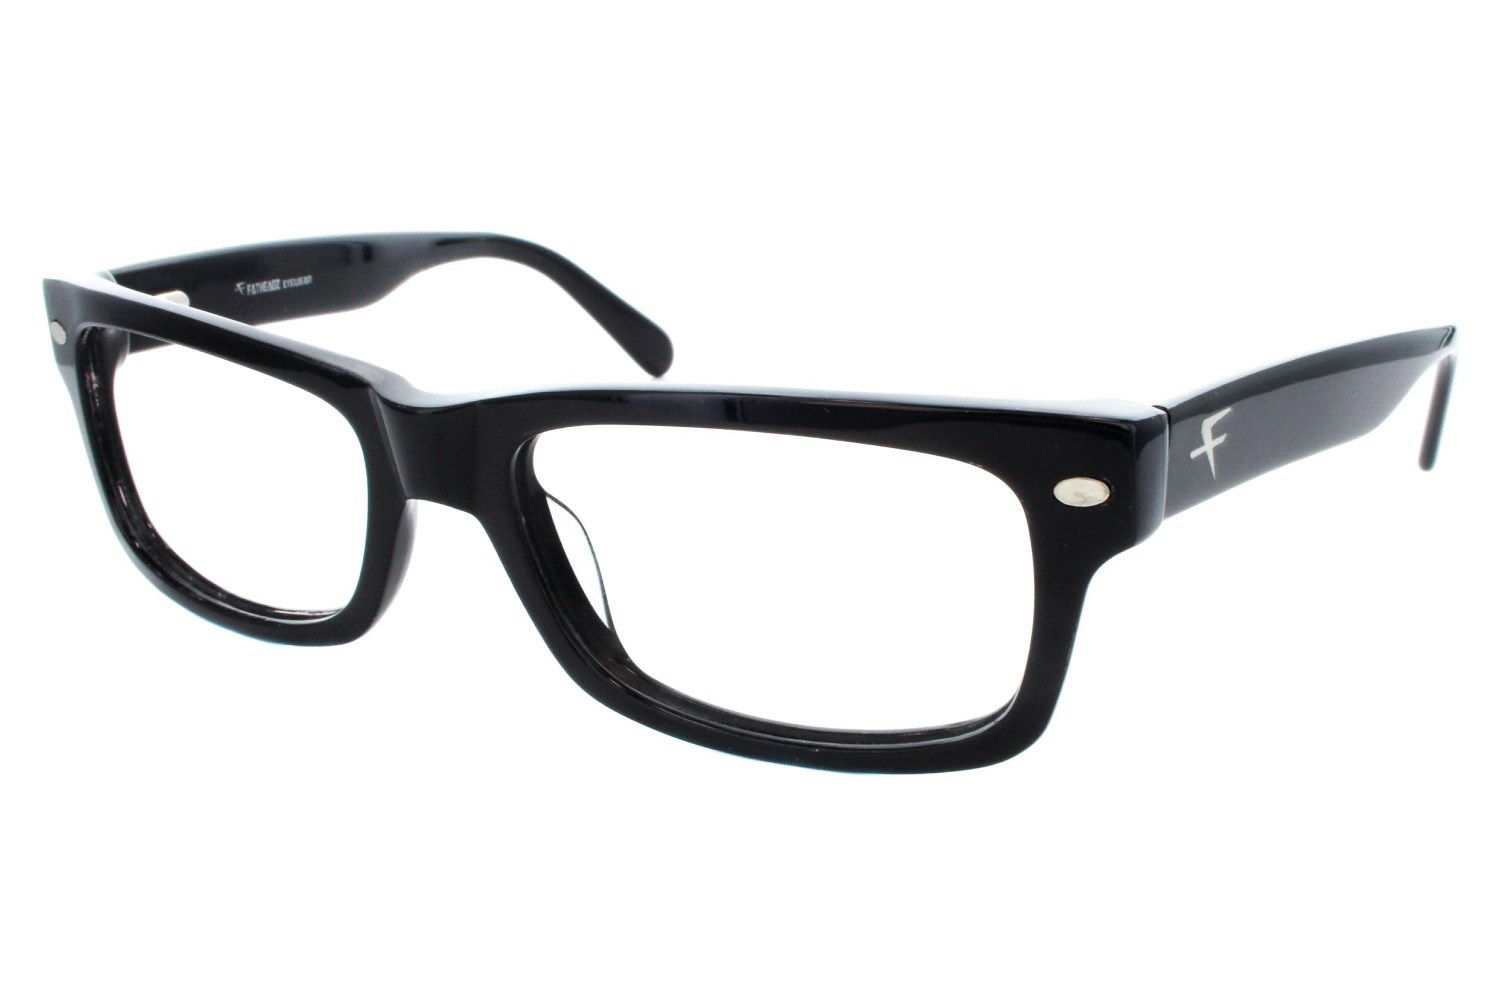 071ea0bd2a4e Fatheadz Matz Prescription Eyeglasses - properopticallook